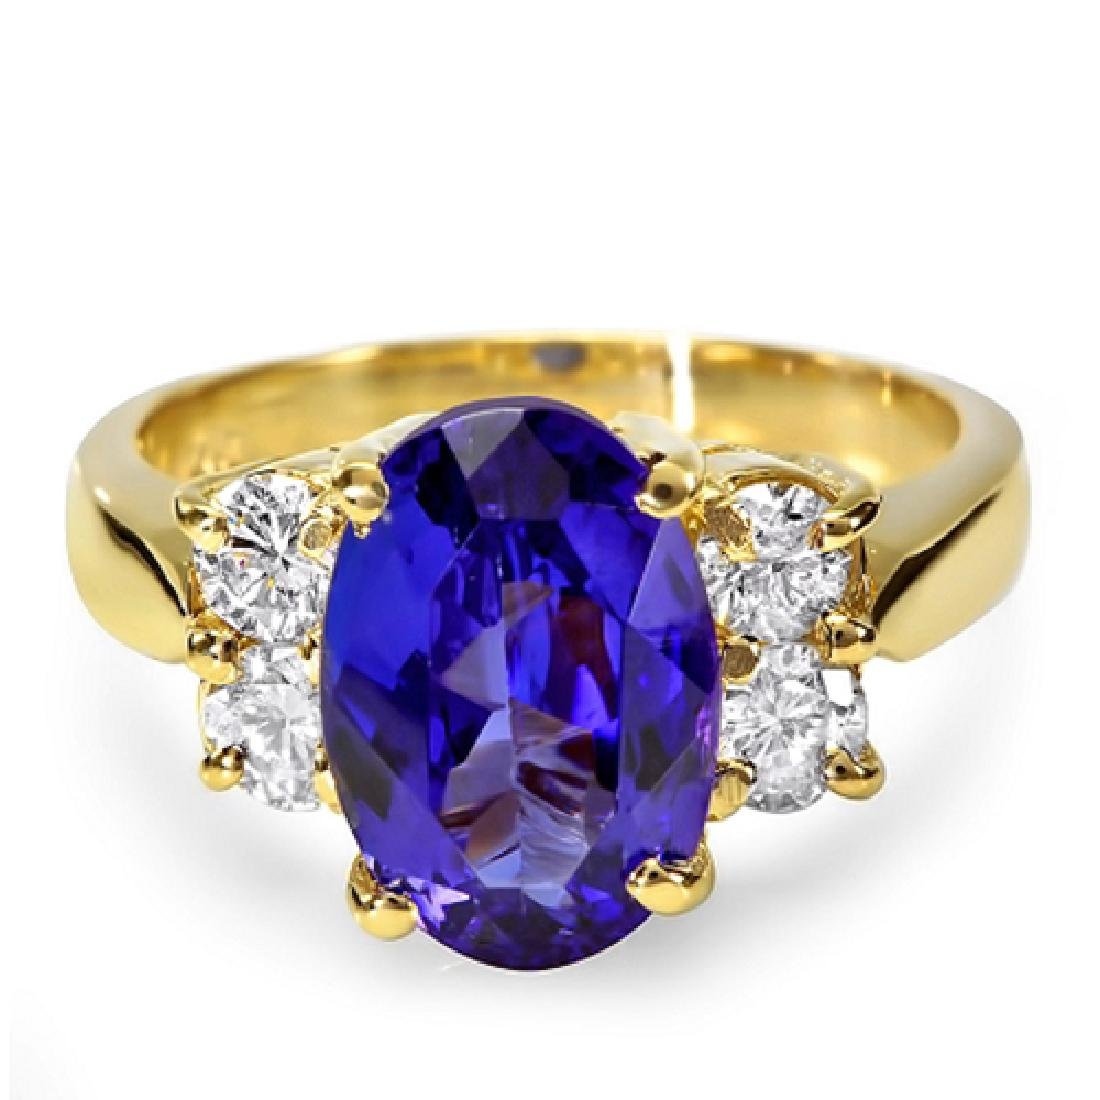 4.83 Carat Natural Tanzanite 18K Solid Yellow Gold